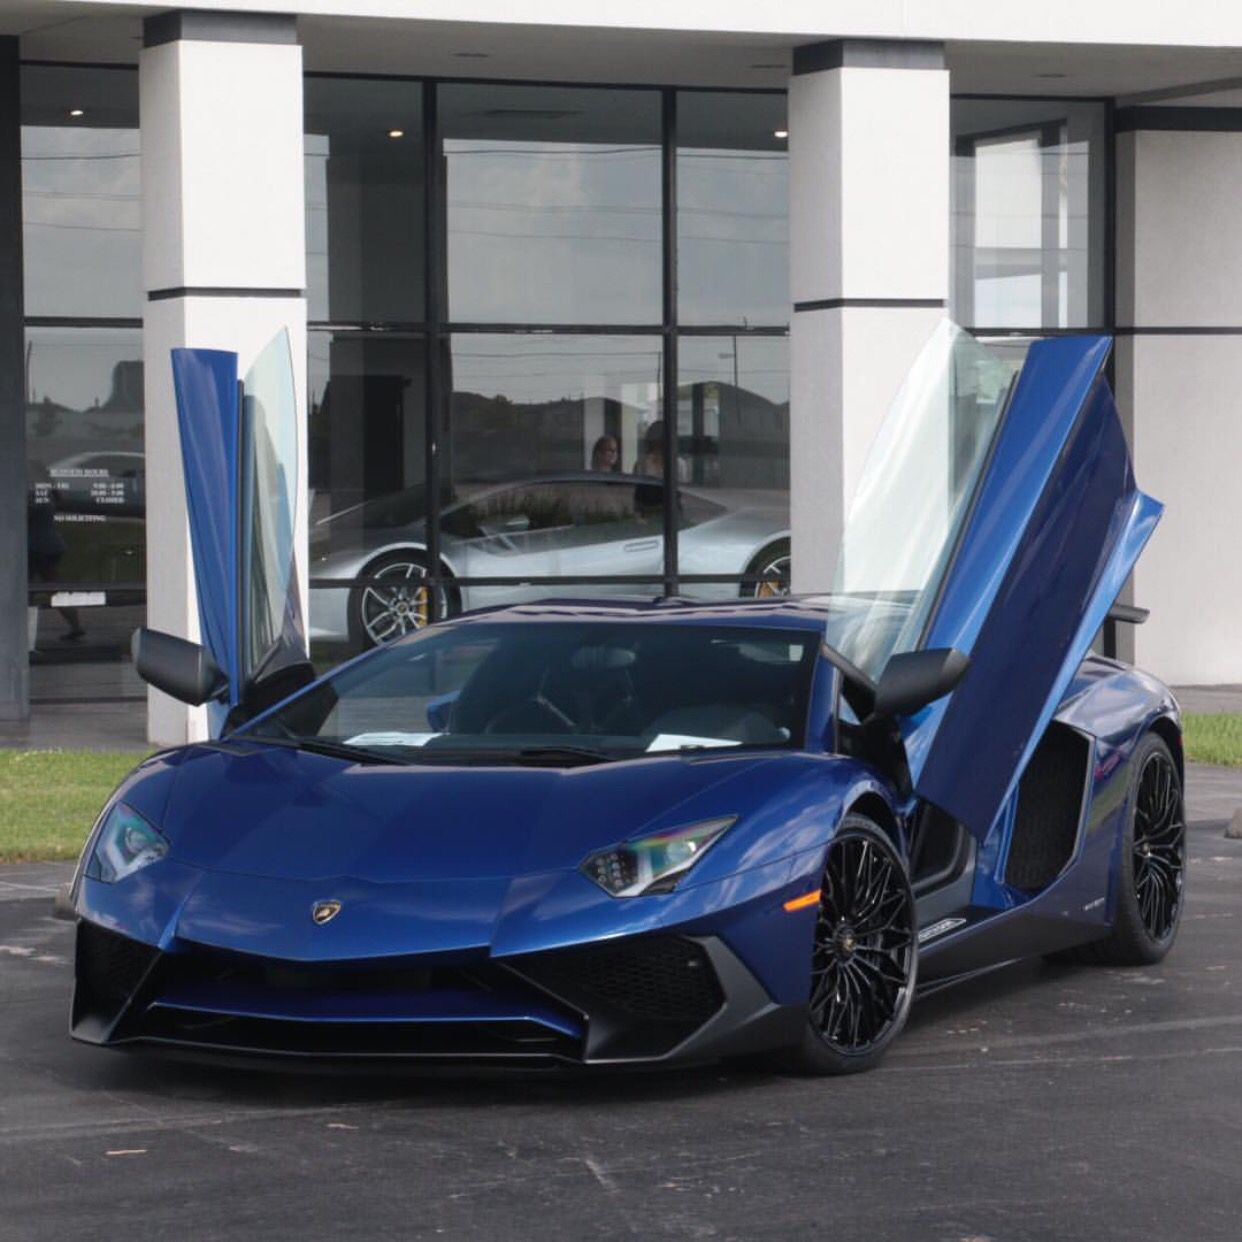 Lamborghini Aventador Super Veloce Painted In Blu Sideris